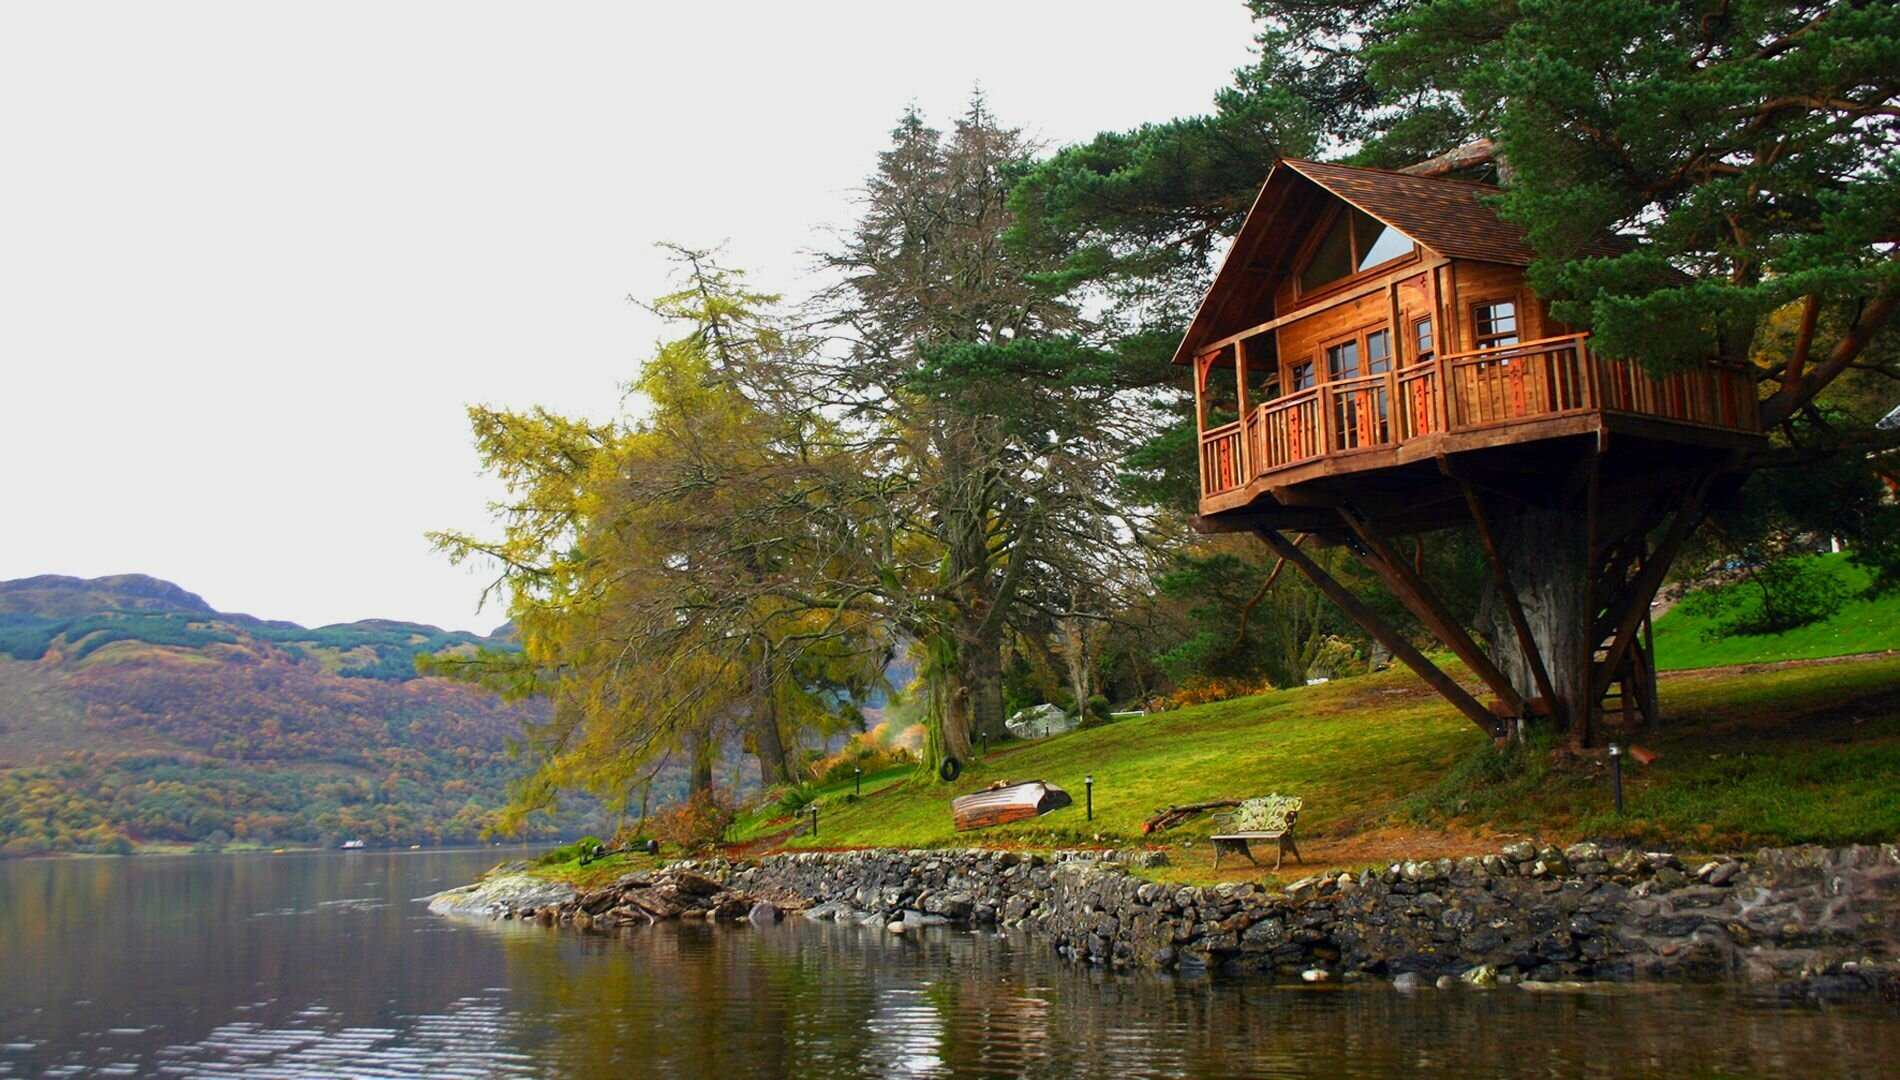 18 amazing tree house designs mostbeautifulthings for Incredible house designs